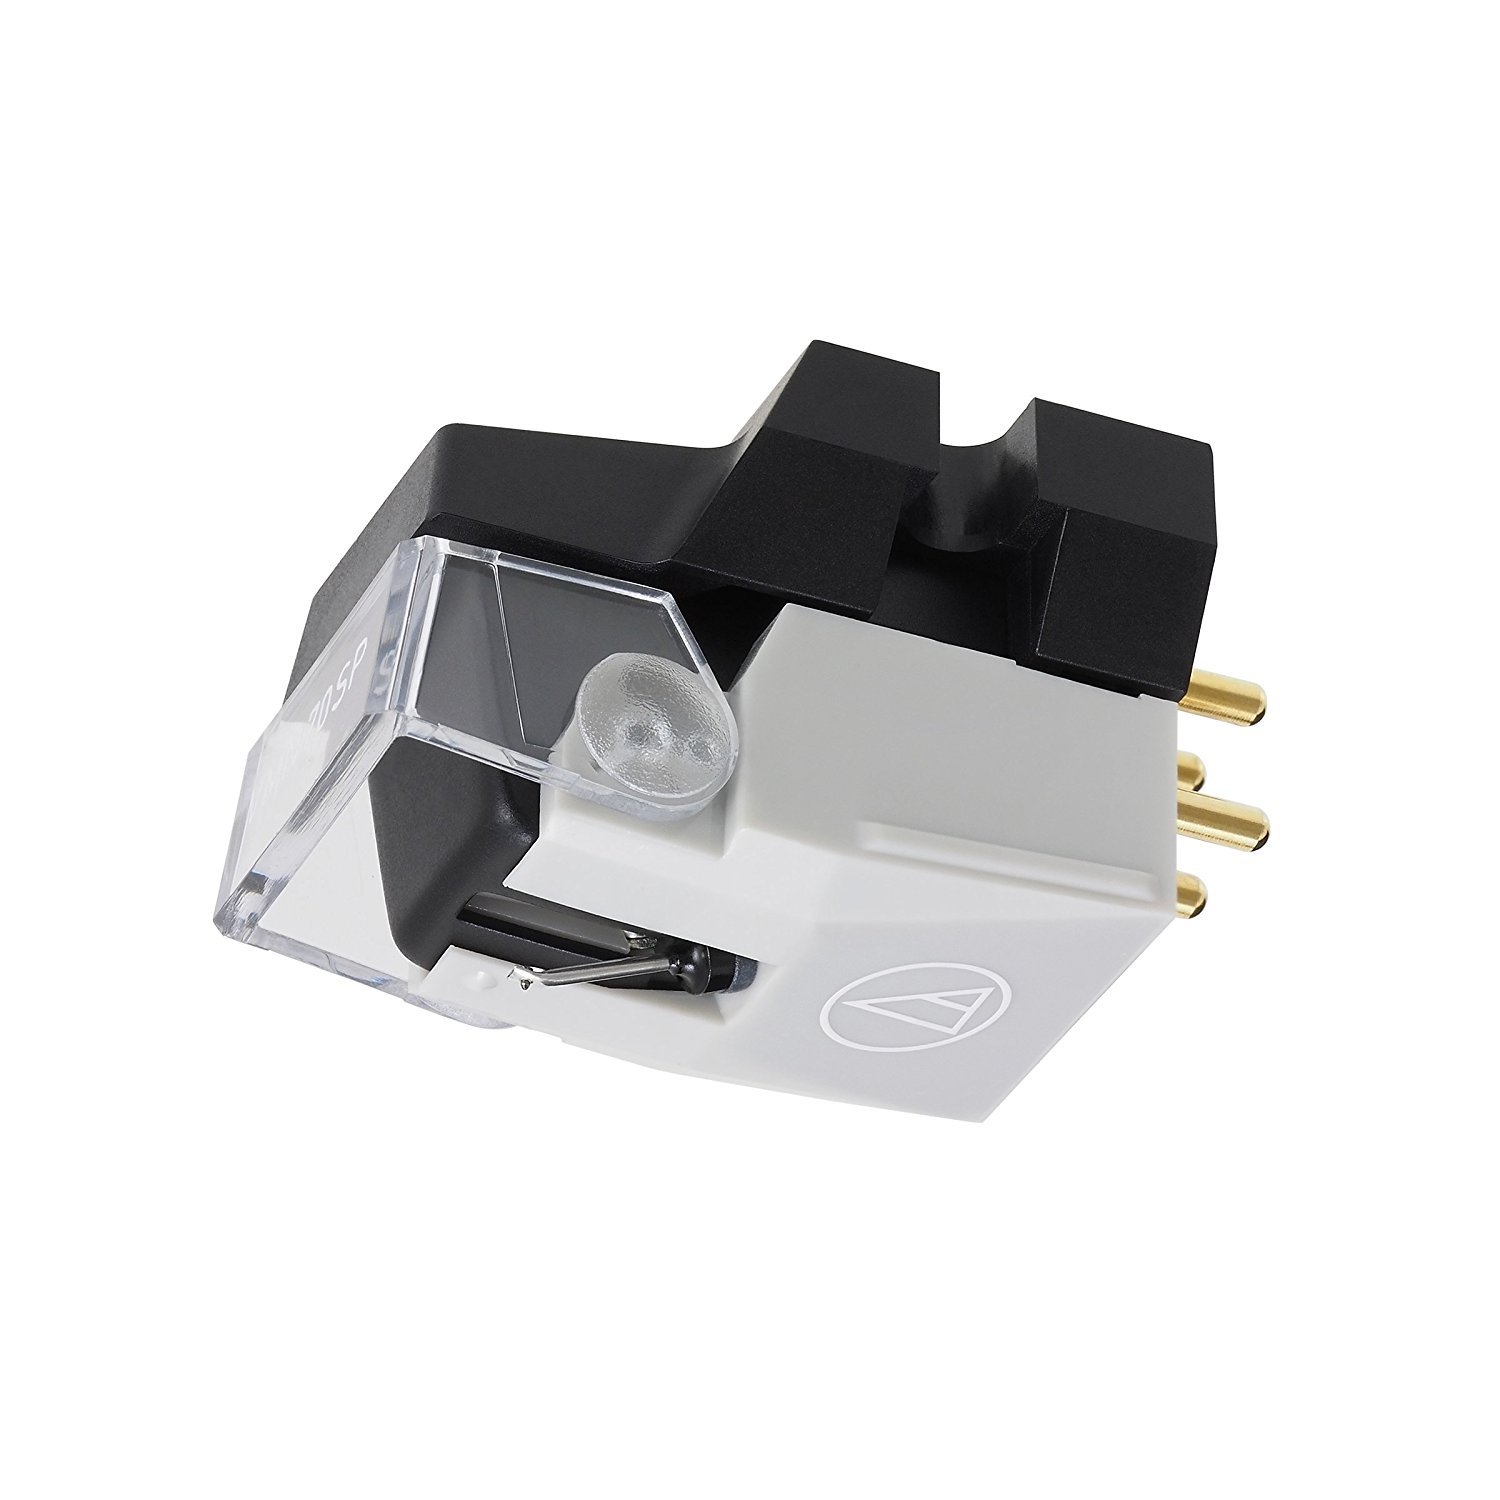 Audio Technica Dual Moving Magnet Mono Phono Cartridge with 78 RPM Stylus by Audio-Technica